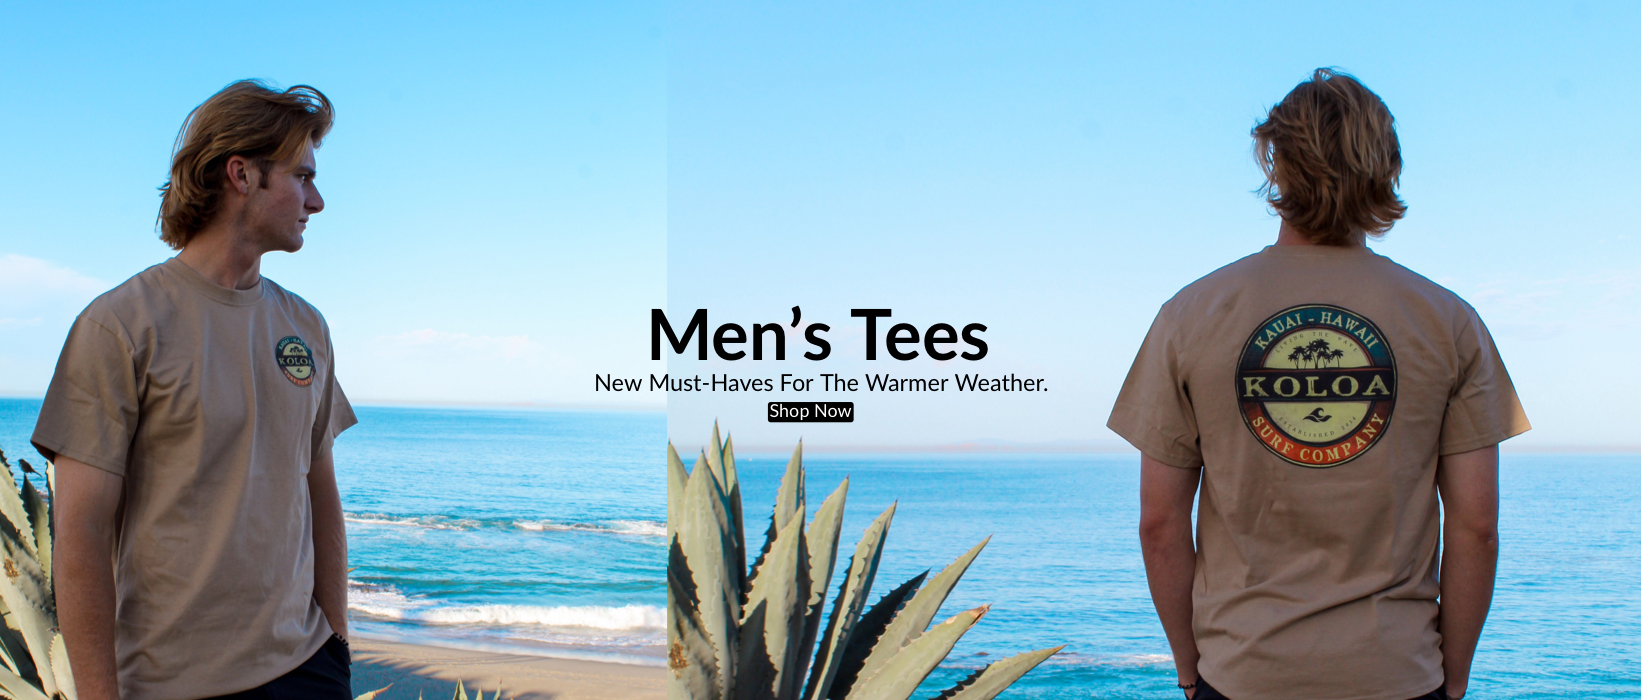 Shop Men's Tees... New Must-Haves For The Warmer Weather